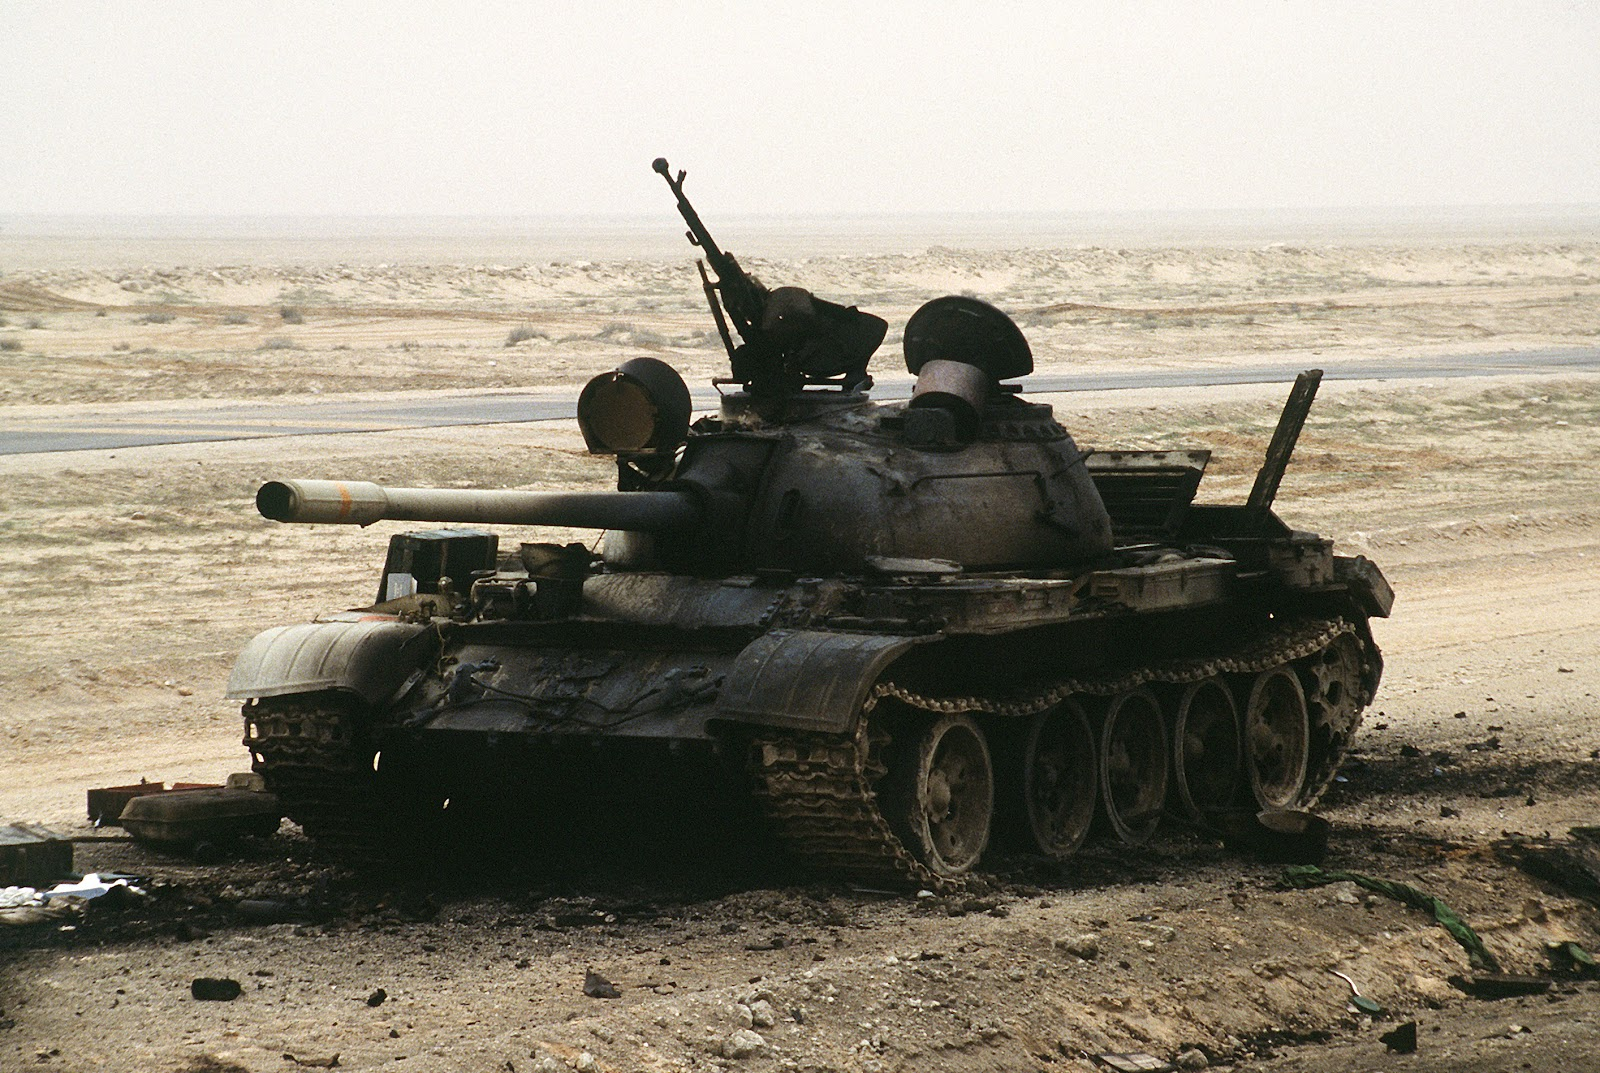 Destroyed_T-55_during_Operation_Desert_Storm.jpg